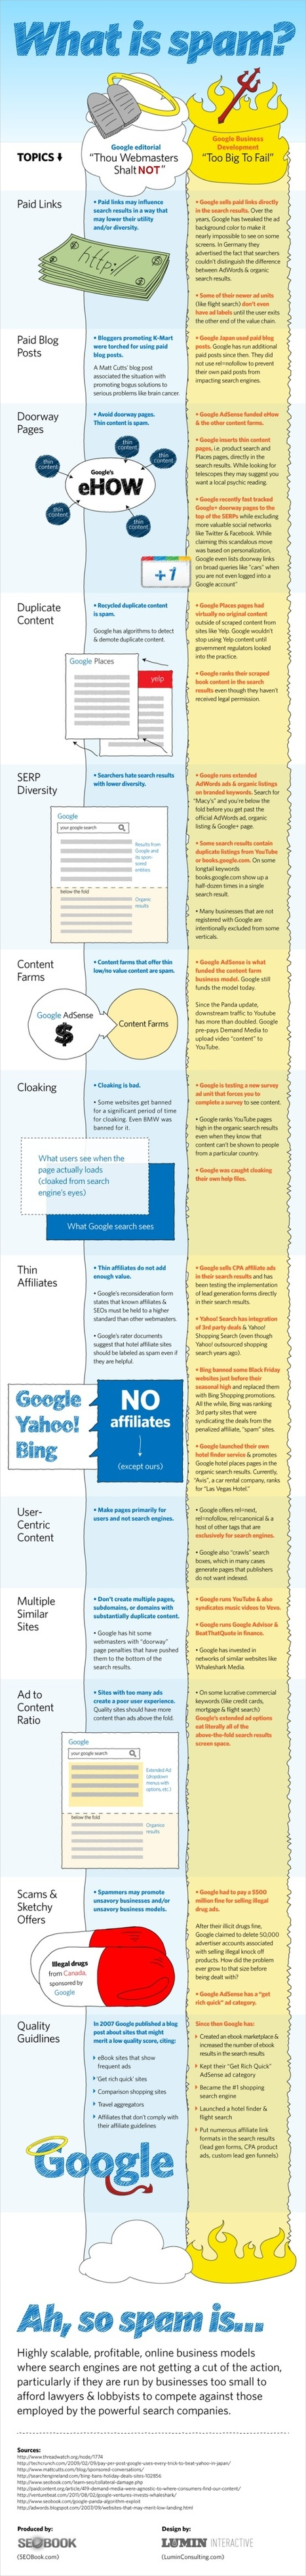 What is Spam? [Infographic] | Social Media Butterflies | Scoop.it